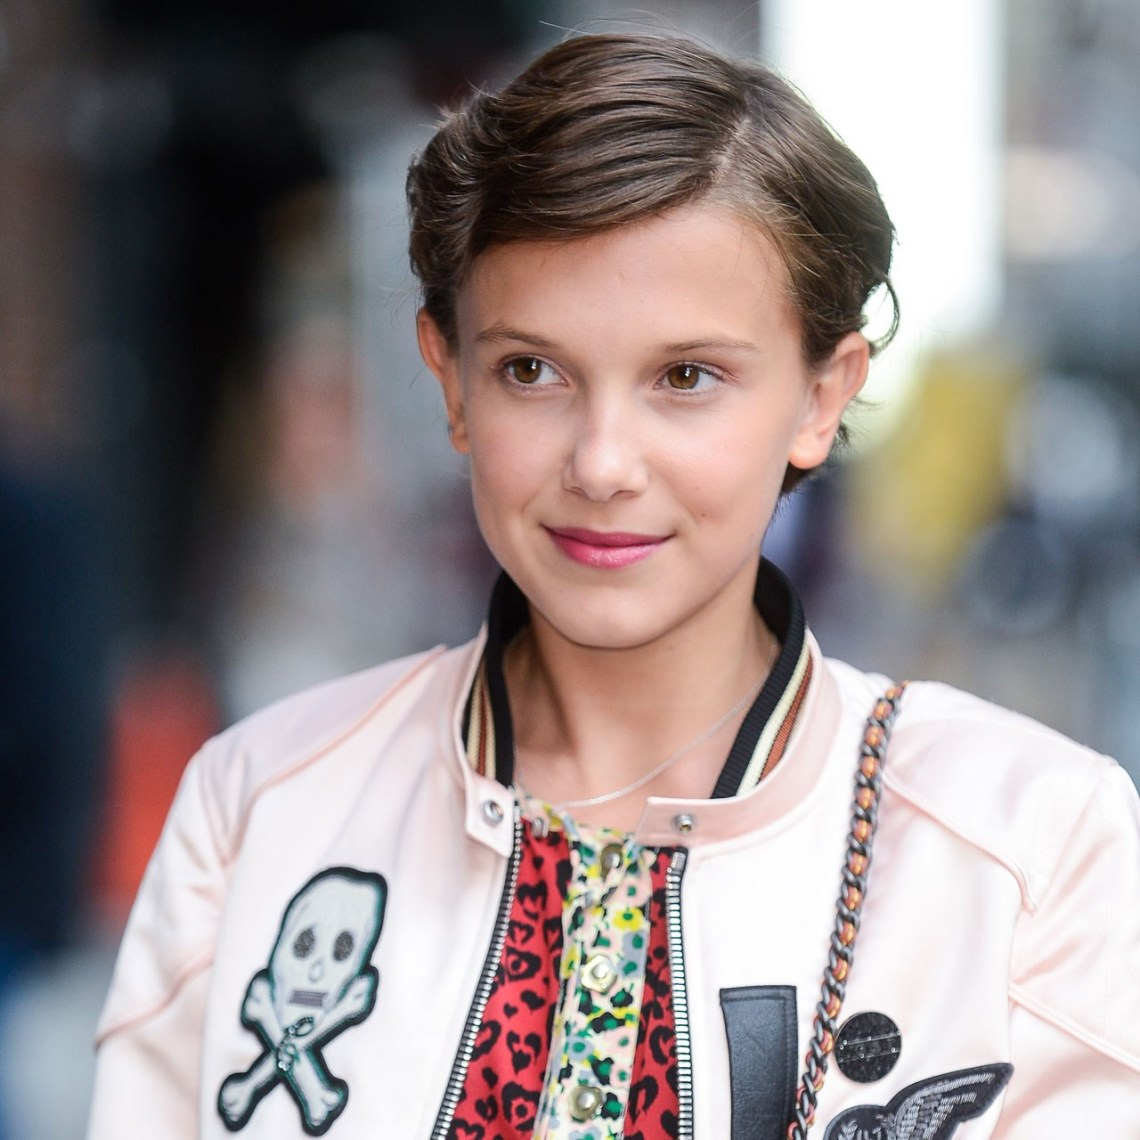 millie-bobby-brown-glamour-15sep16_getty_b